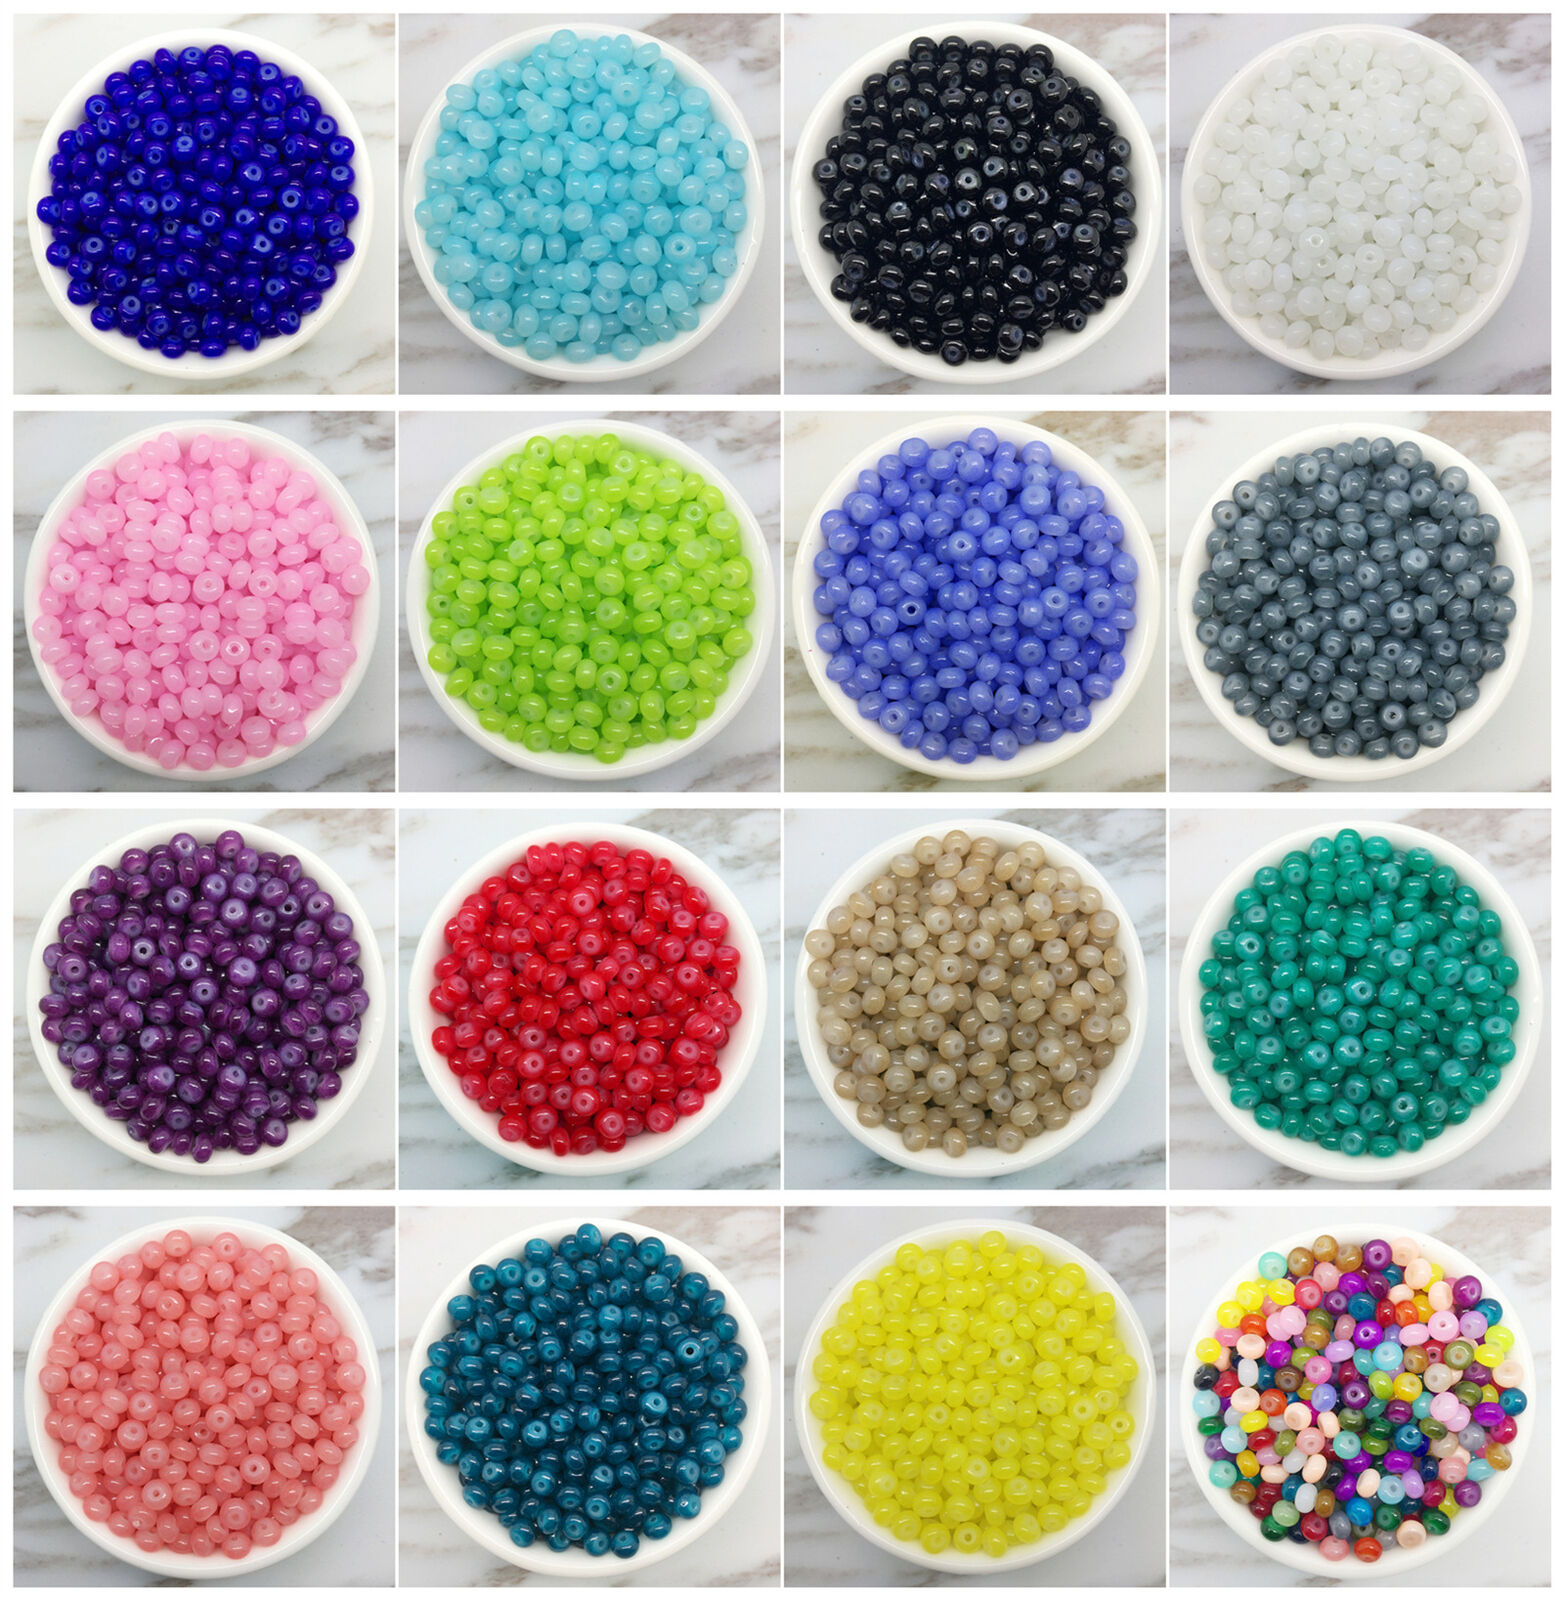 150pcs Oval Cabochon Cultured Flatback Pearls Loose Spacer Charms Beads Findings